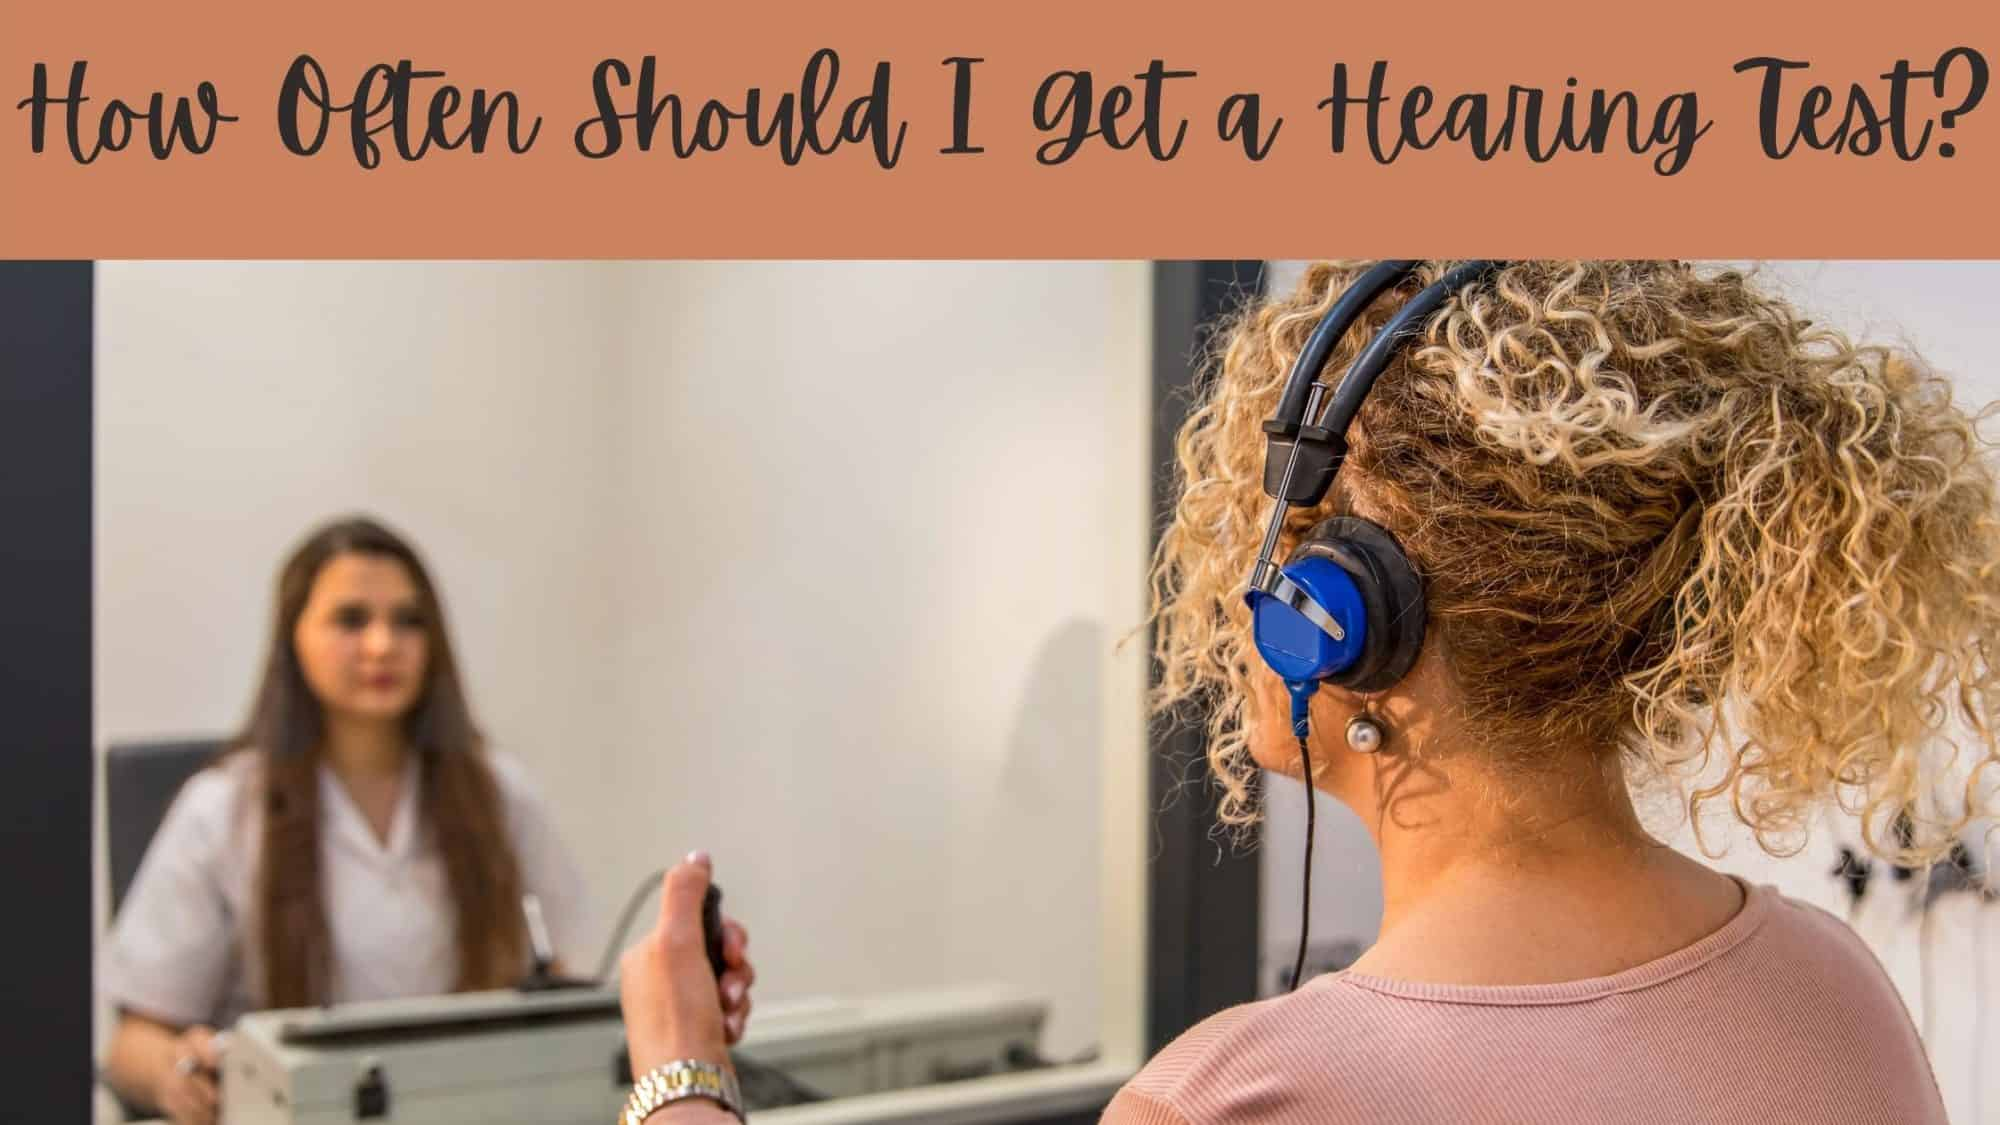 How Often Should I Get a Hearing Test